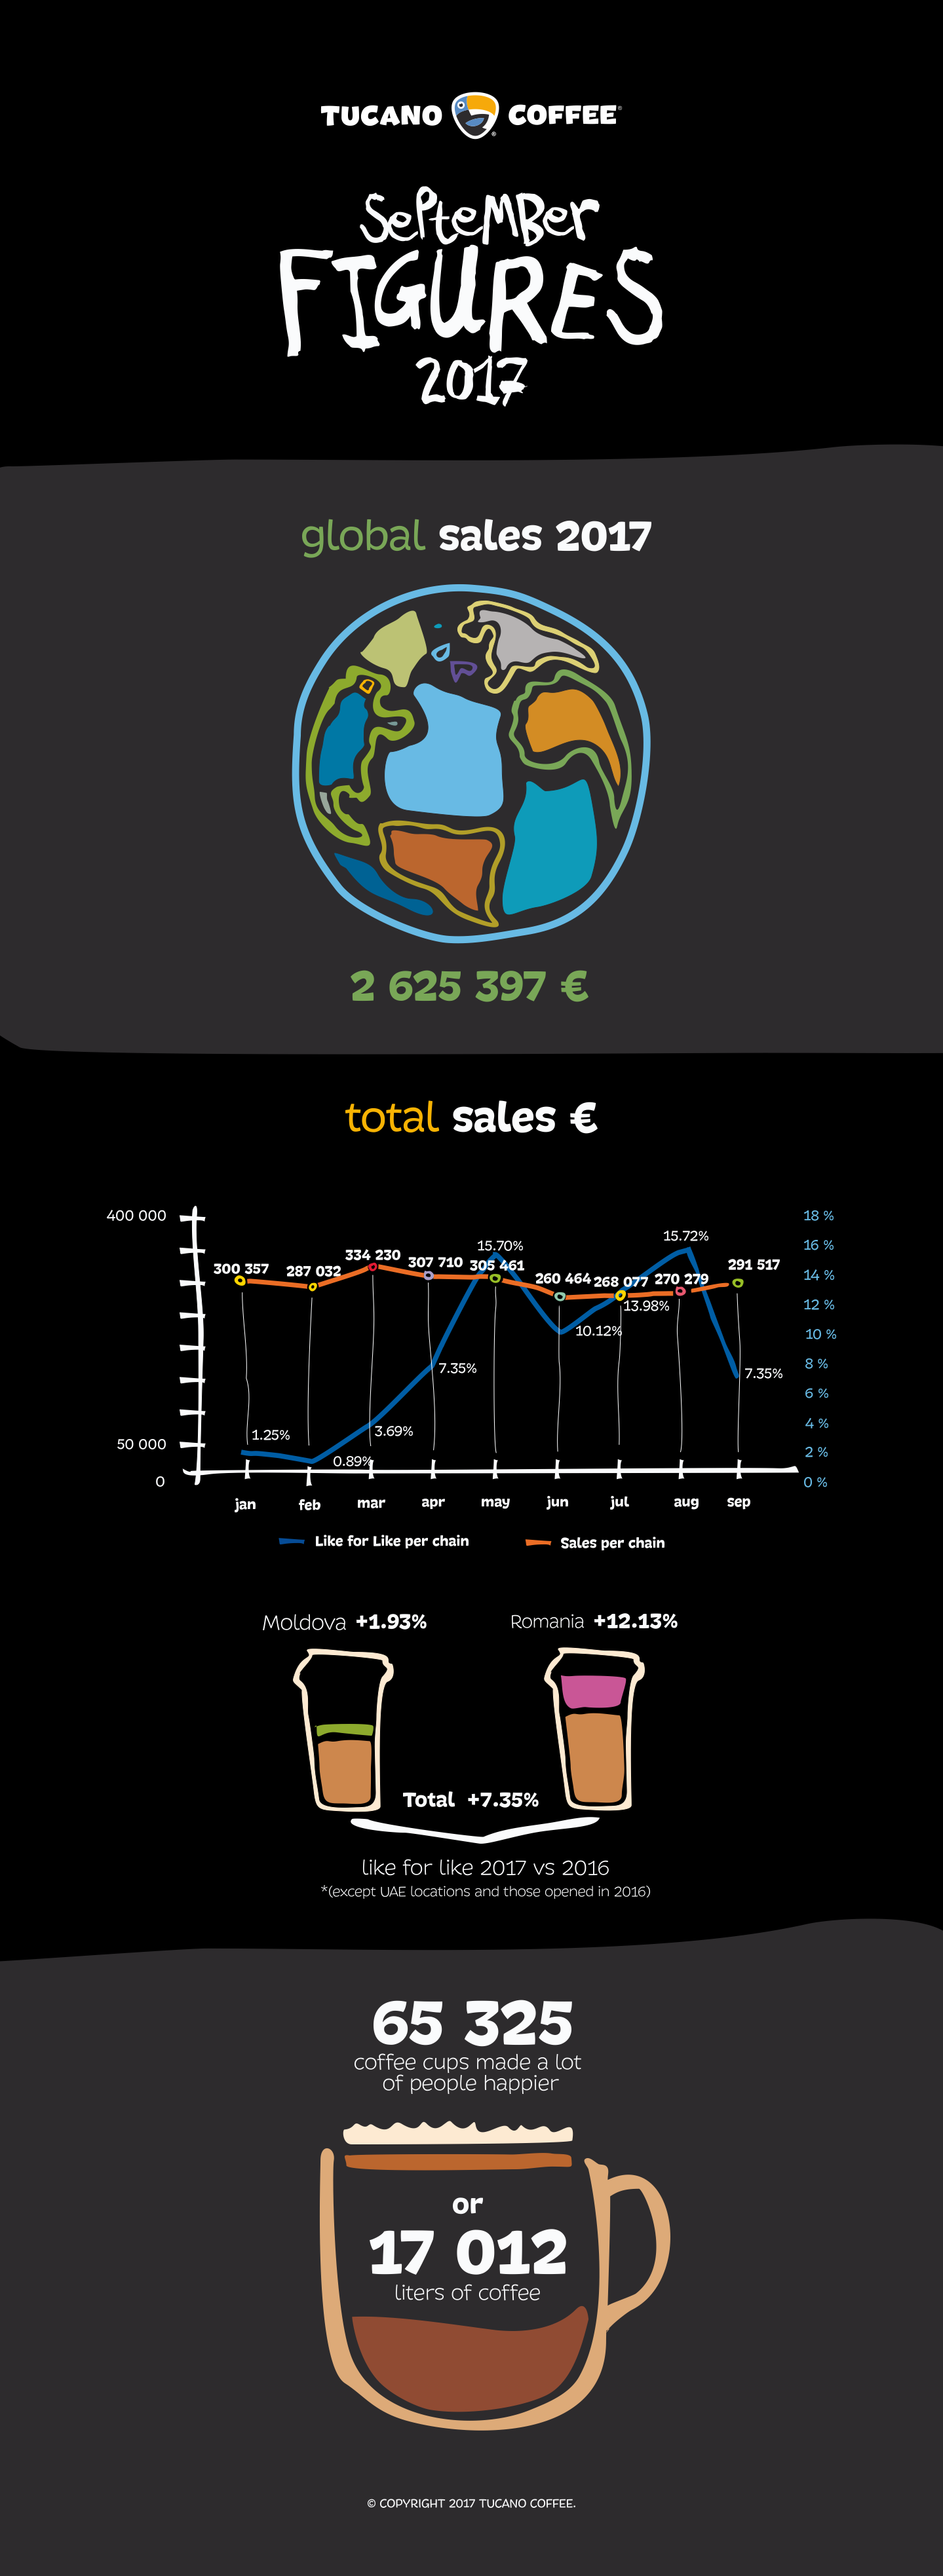 infographic tucano coffee september